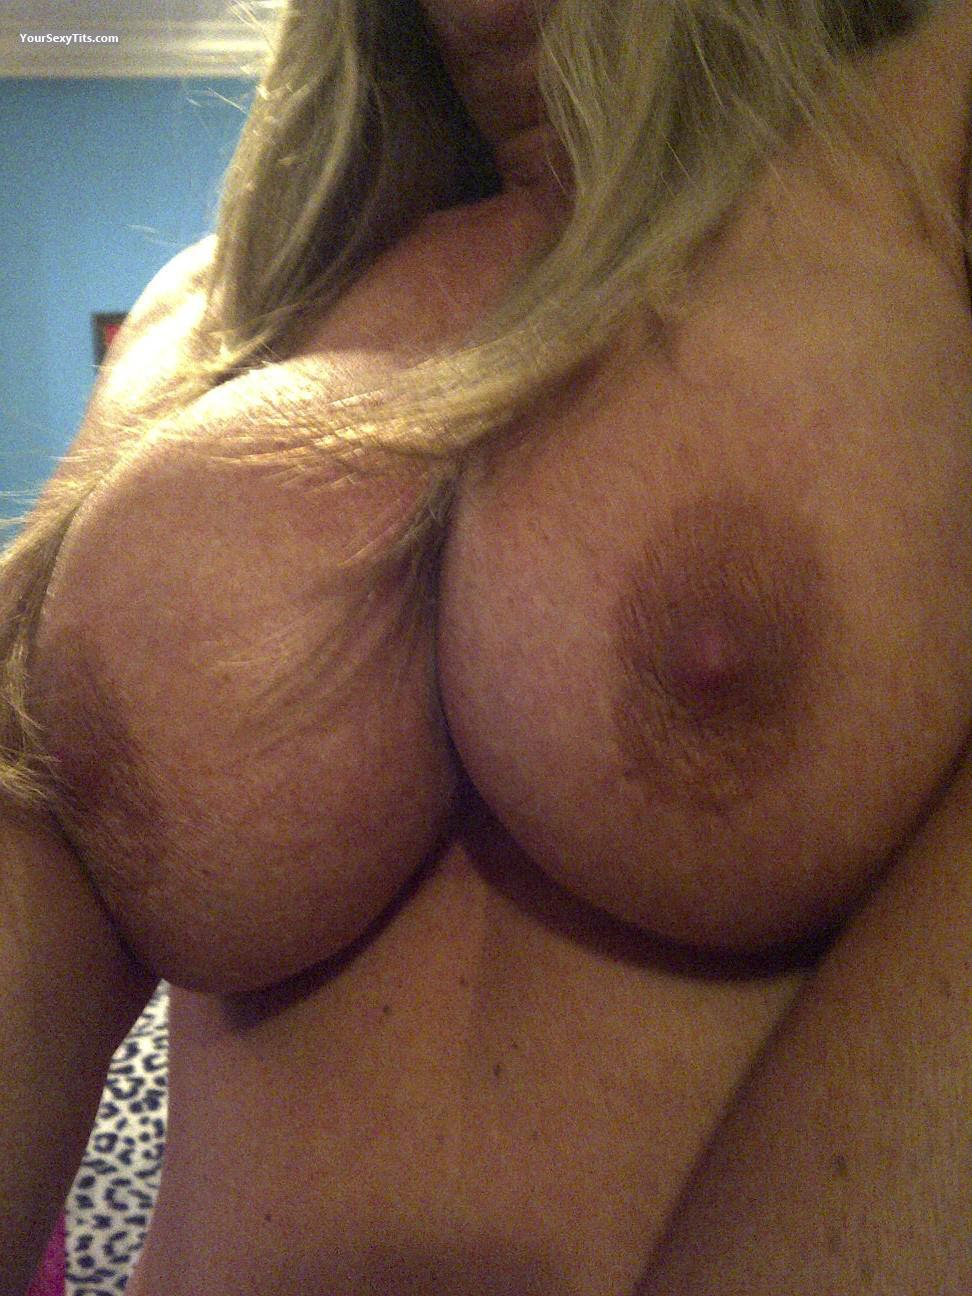 Tit Flash: Very Big Tits - Mississippi Girl from United States